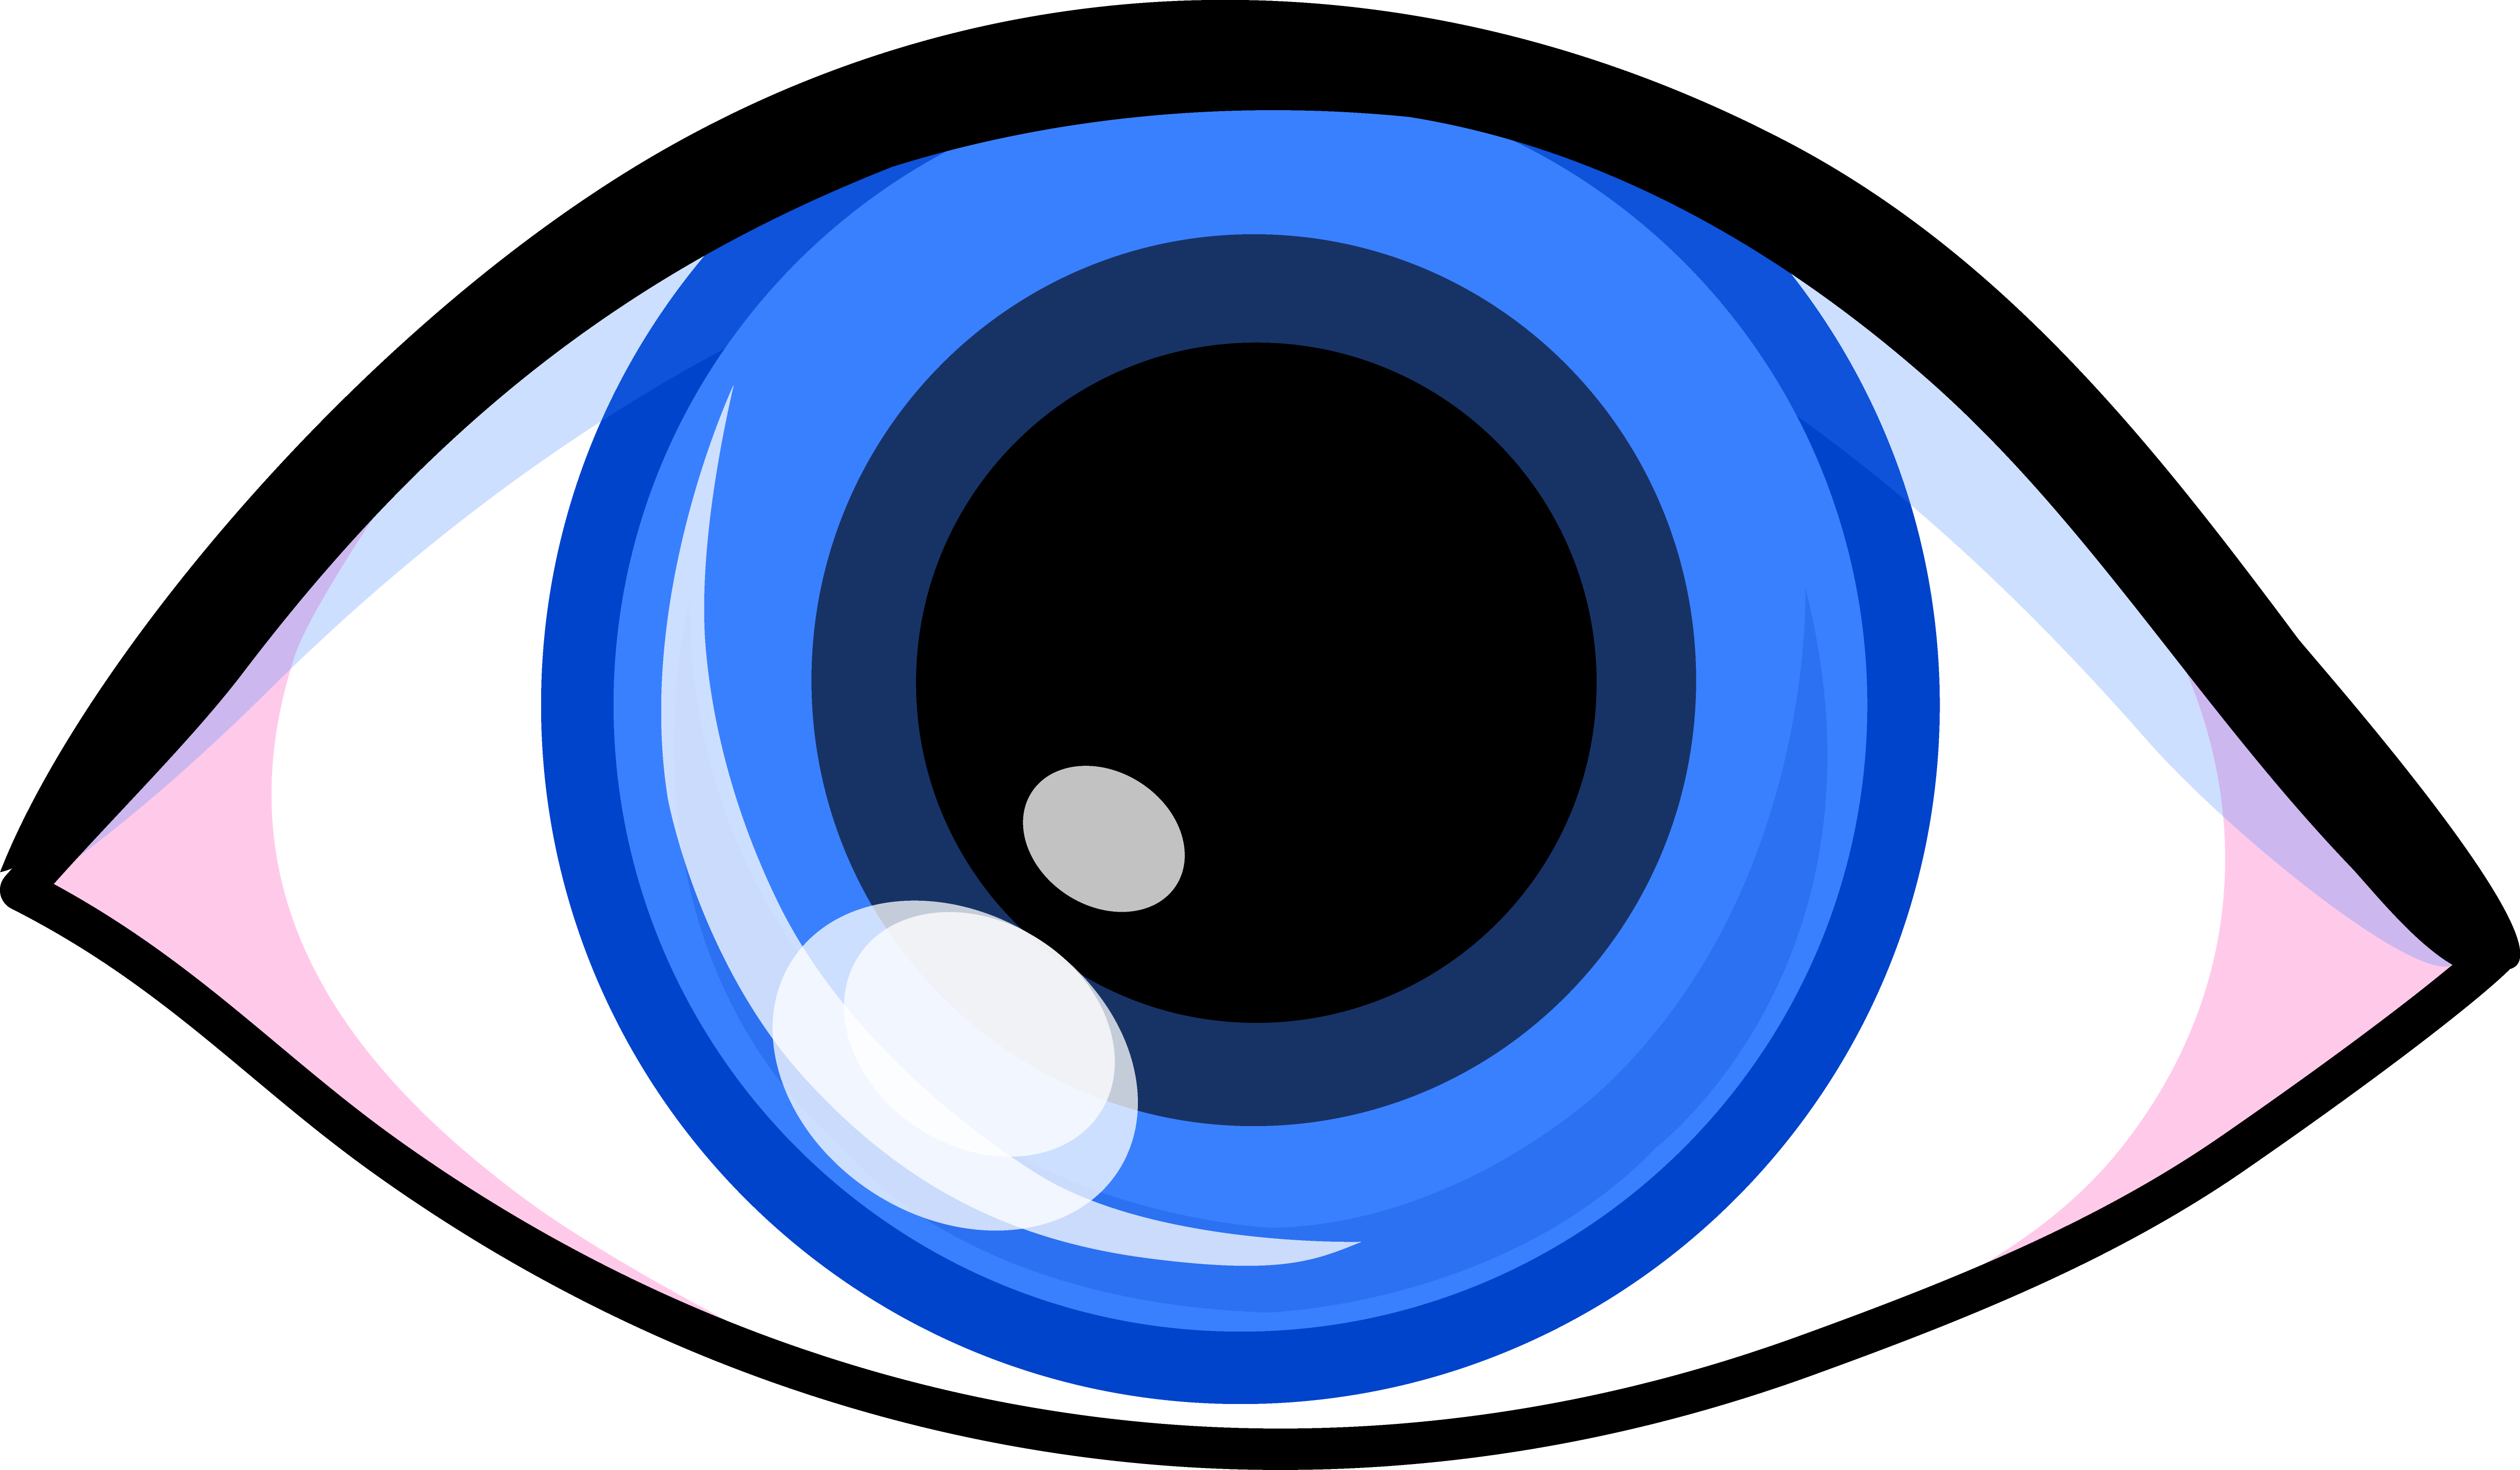 Kite clipart eye.  collection of blue